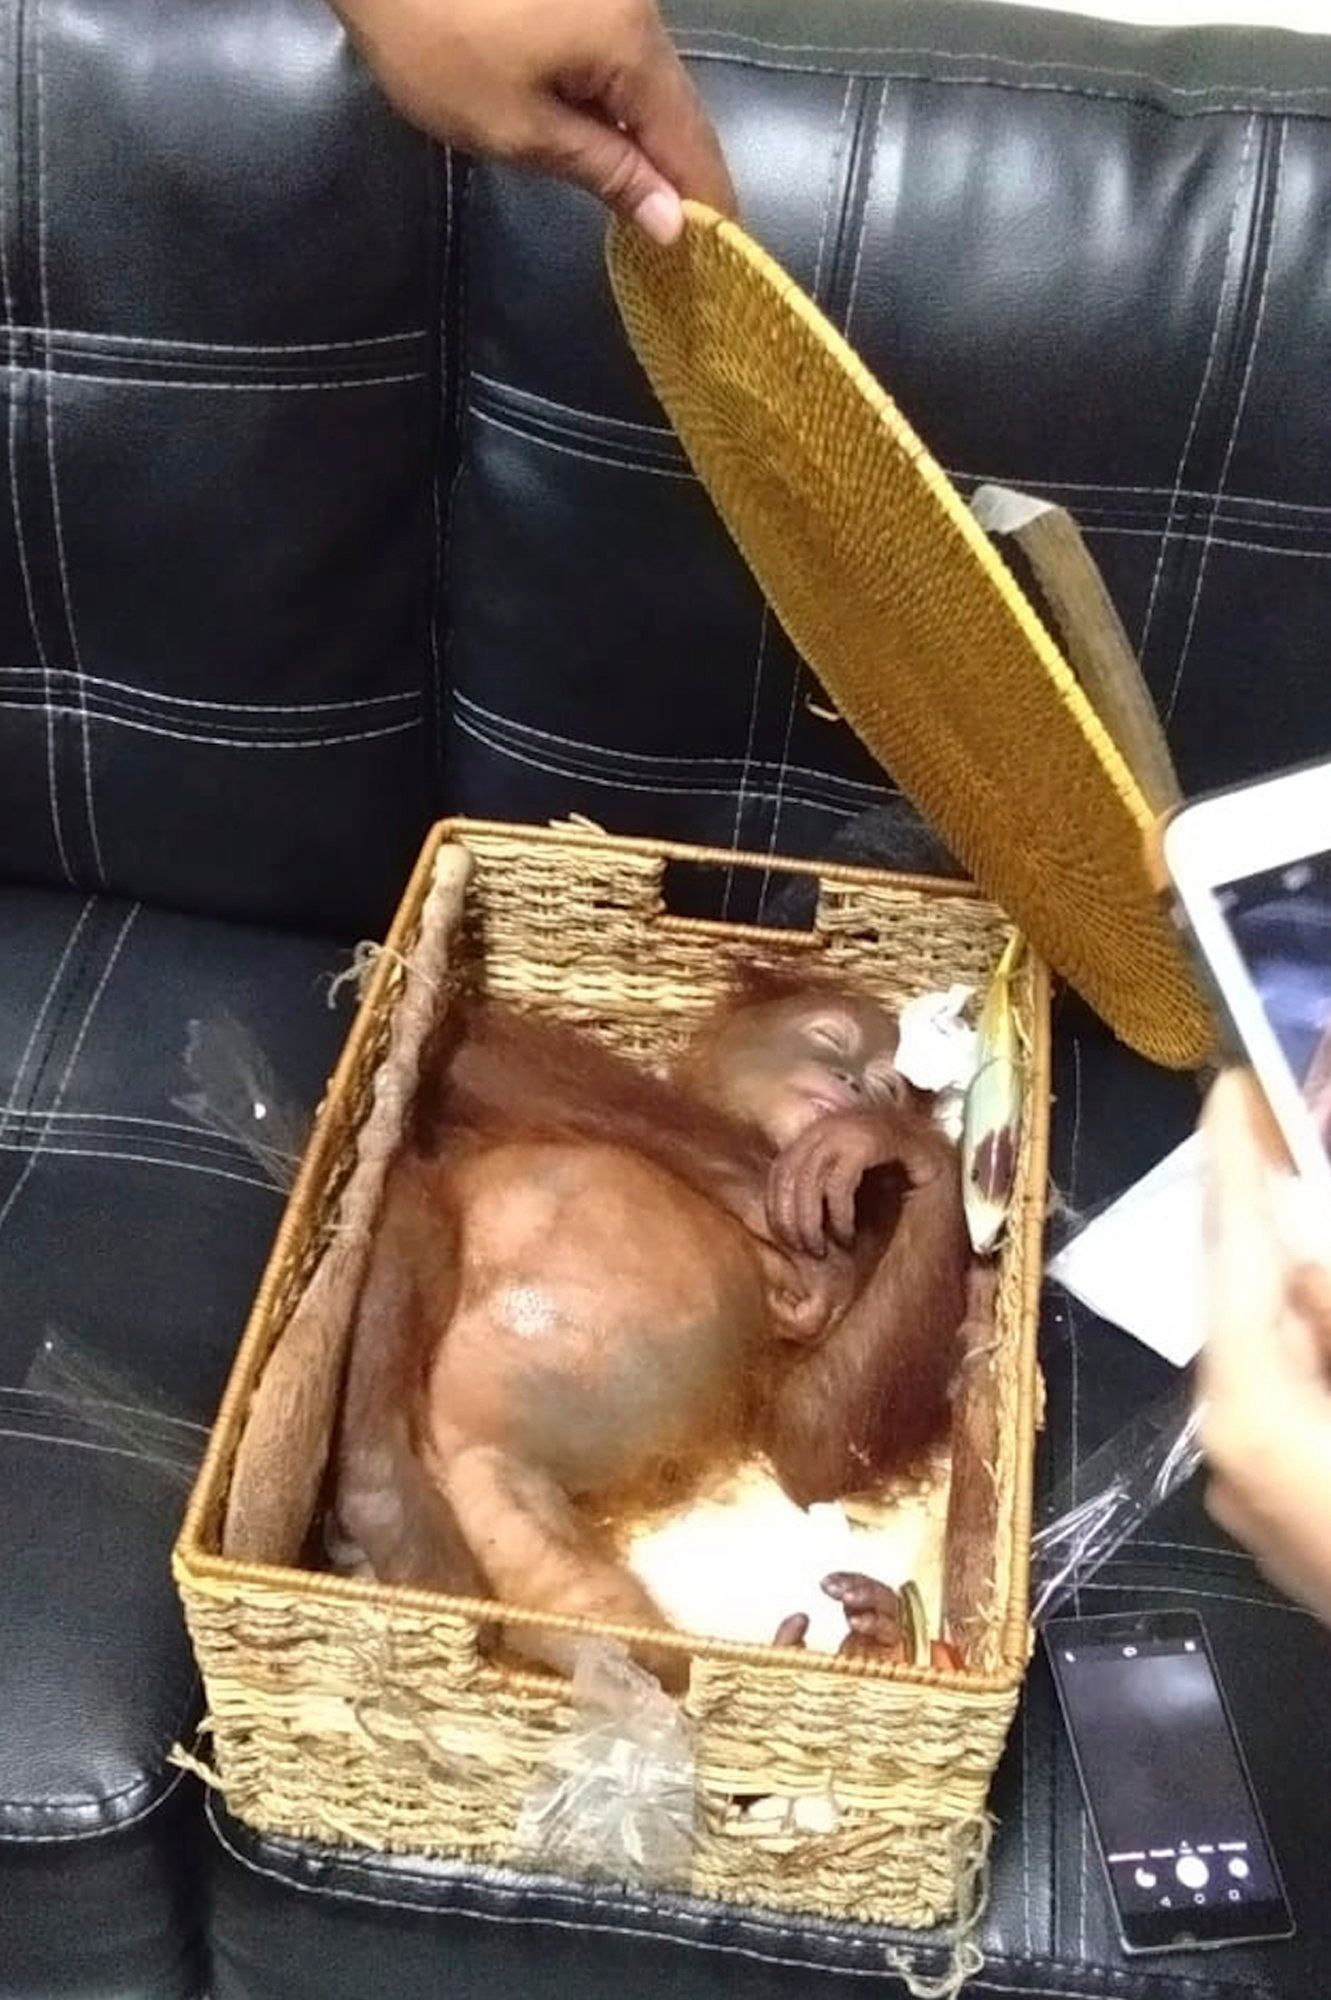 The orangutan was found asleep inside a rattan basket in Zhestkov's suitcase, the officials said.